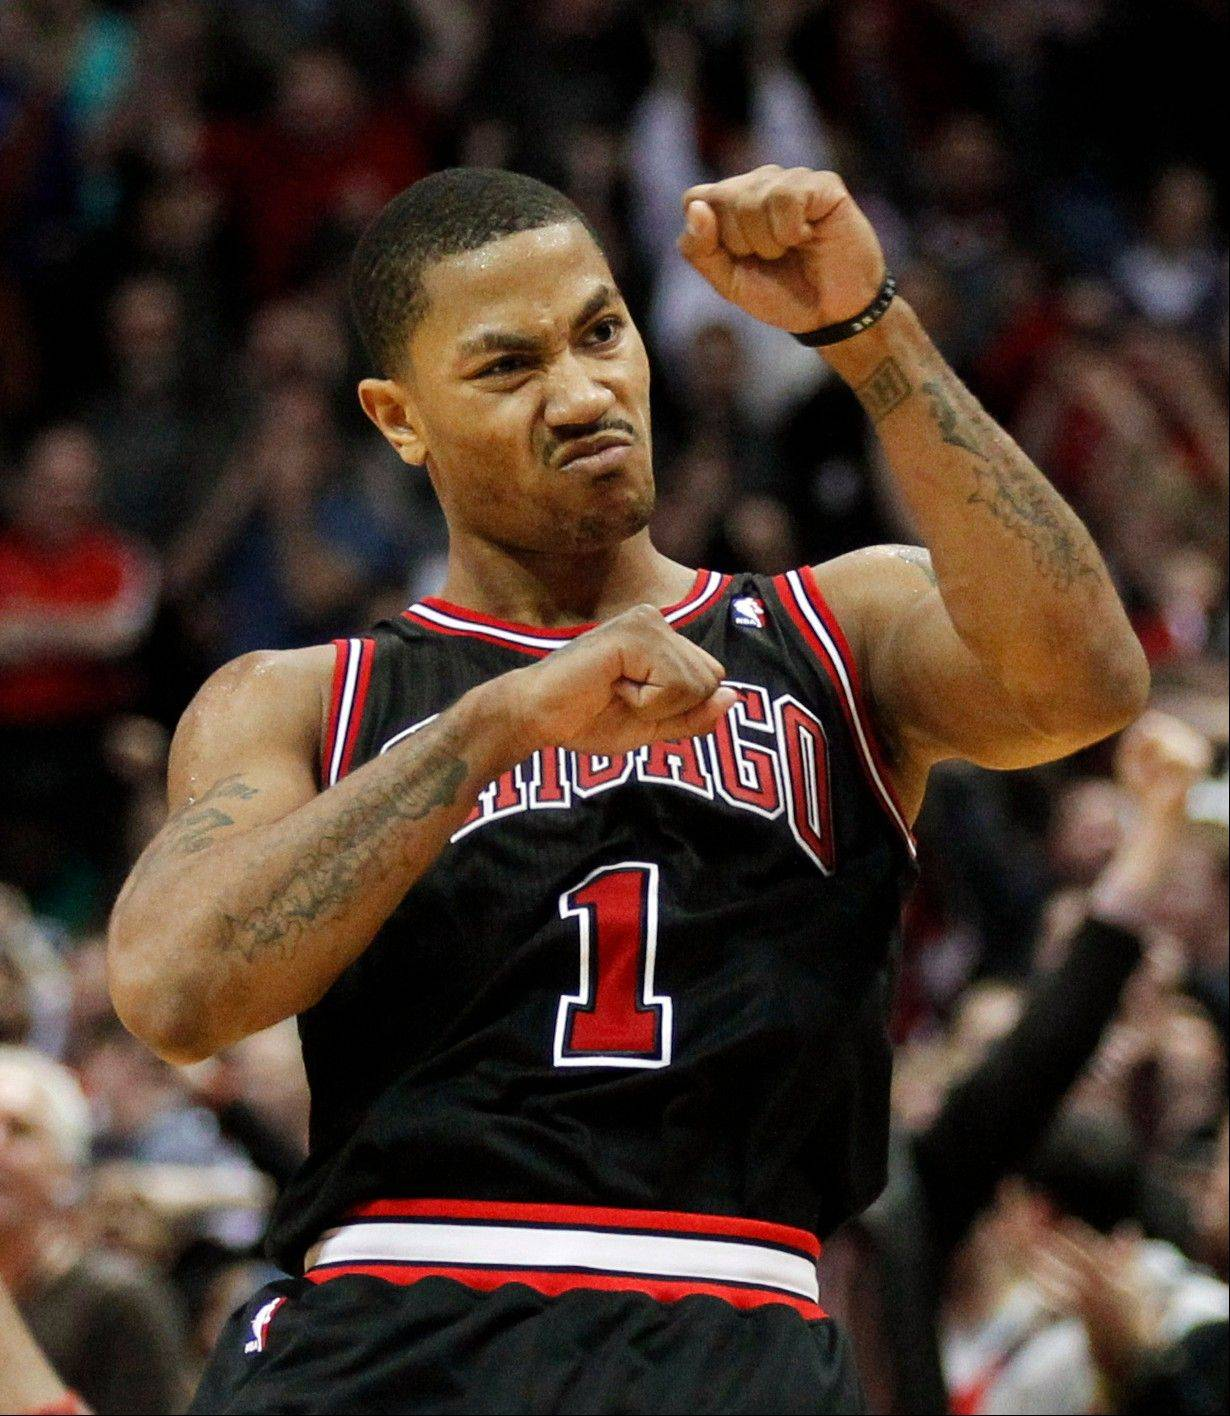 Derrick Rose will not play against Miami tonight at the United Center. Rose may have suffered a groin injury while scoring 32 points in Monday's win over New York.